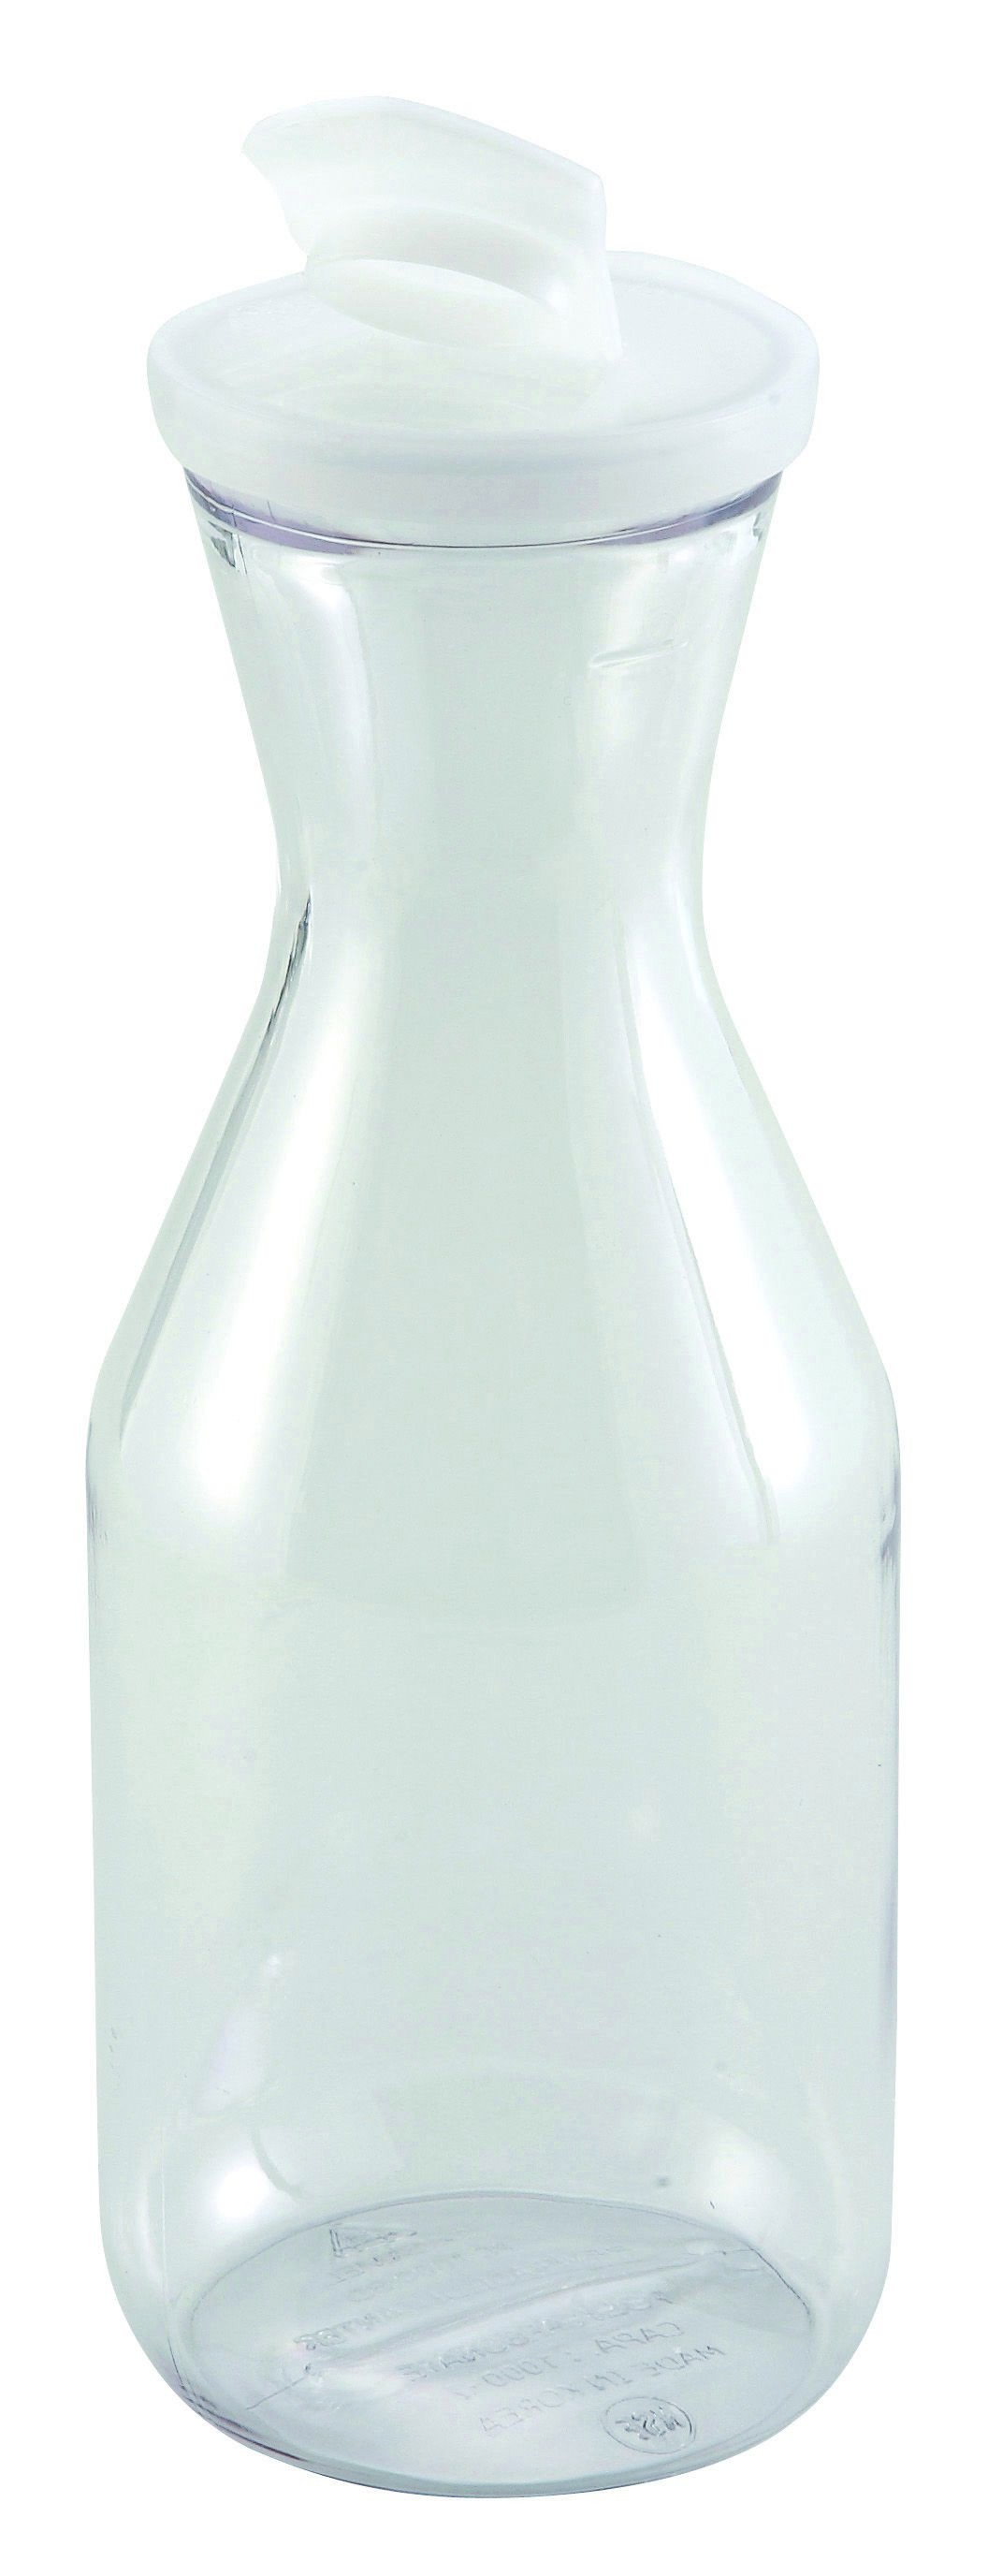 Polycarbonate Decanter W/Lid 0.5L